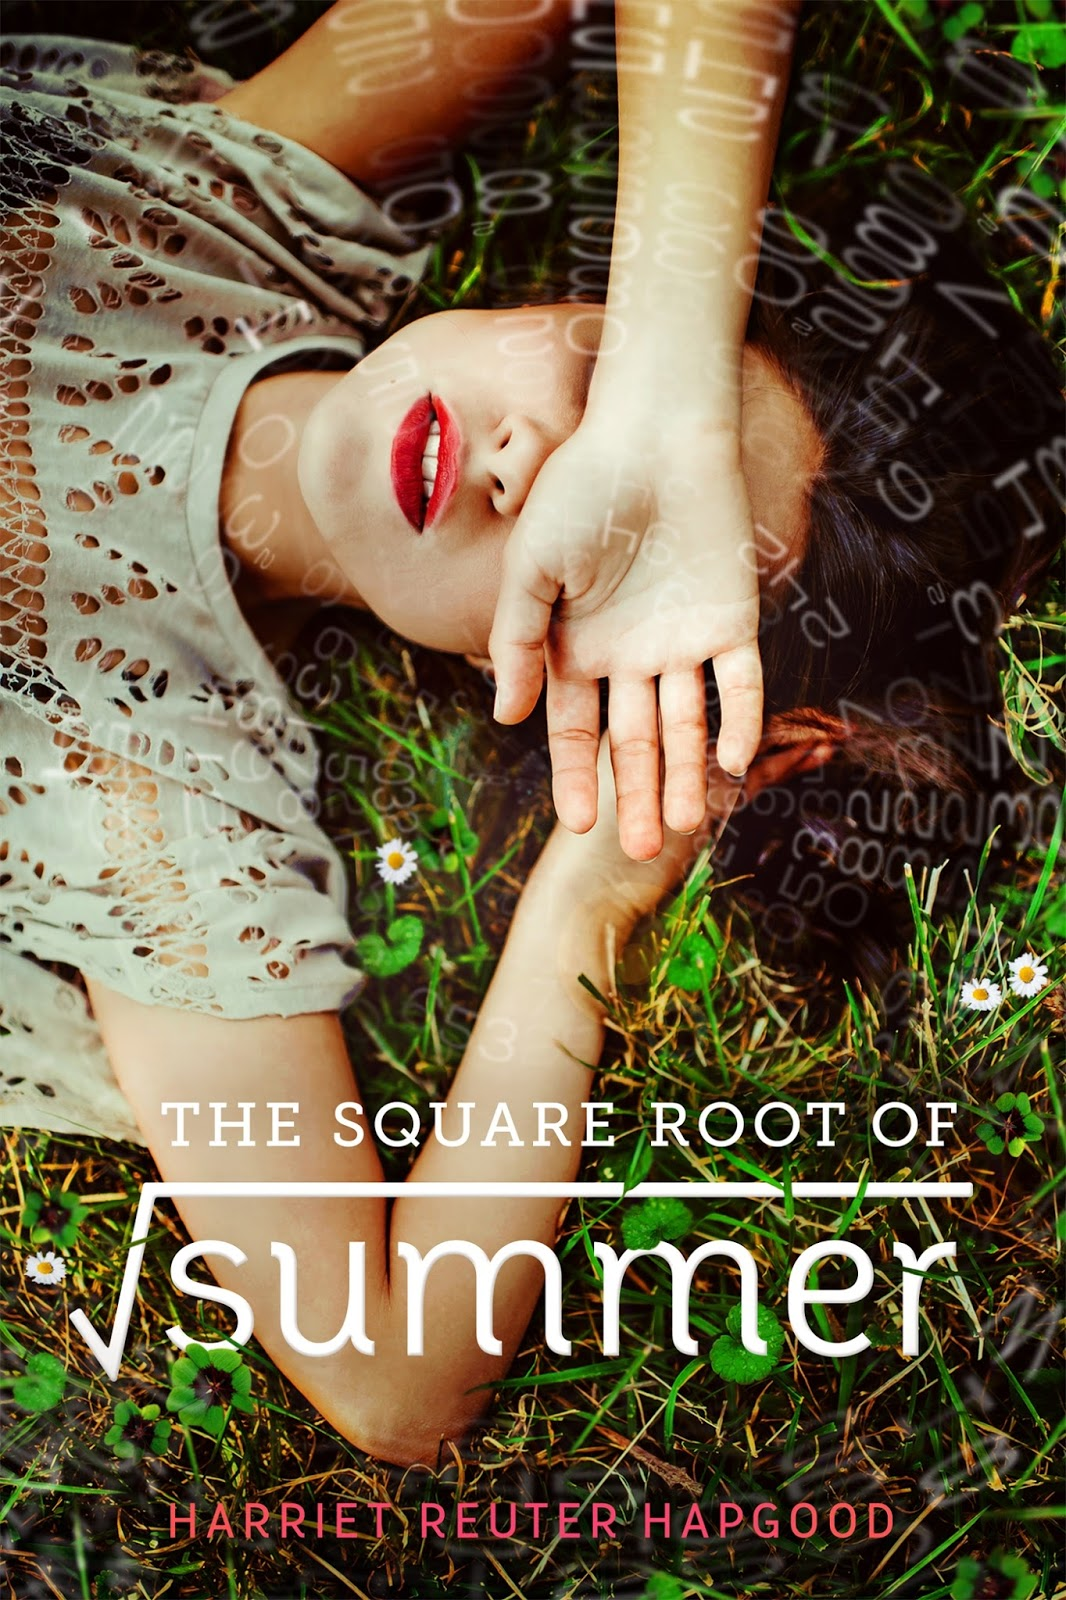 https://www.goodreads.com/book/show/27420164-the-square-root-of-summer